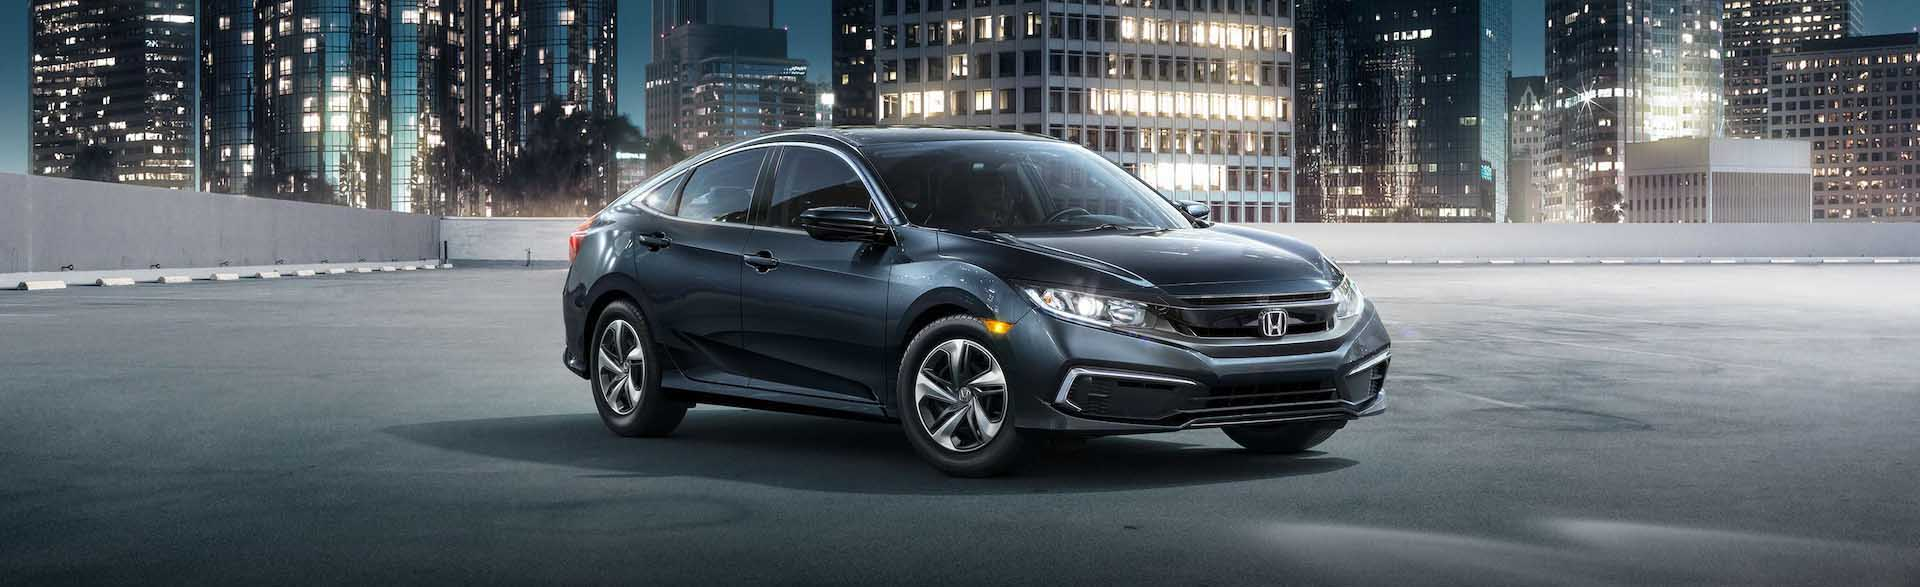 2020 Civic Sedan Models For Sale In Saratoga Springs, New York